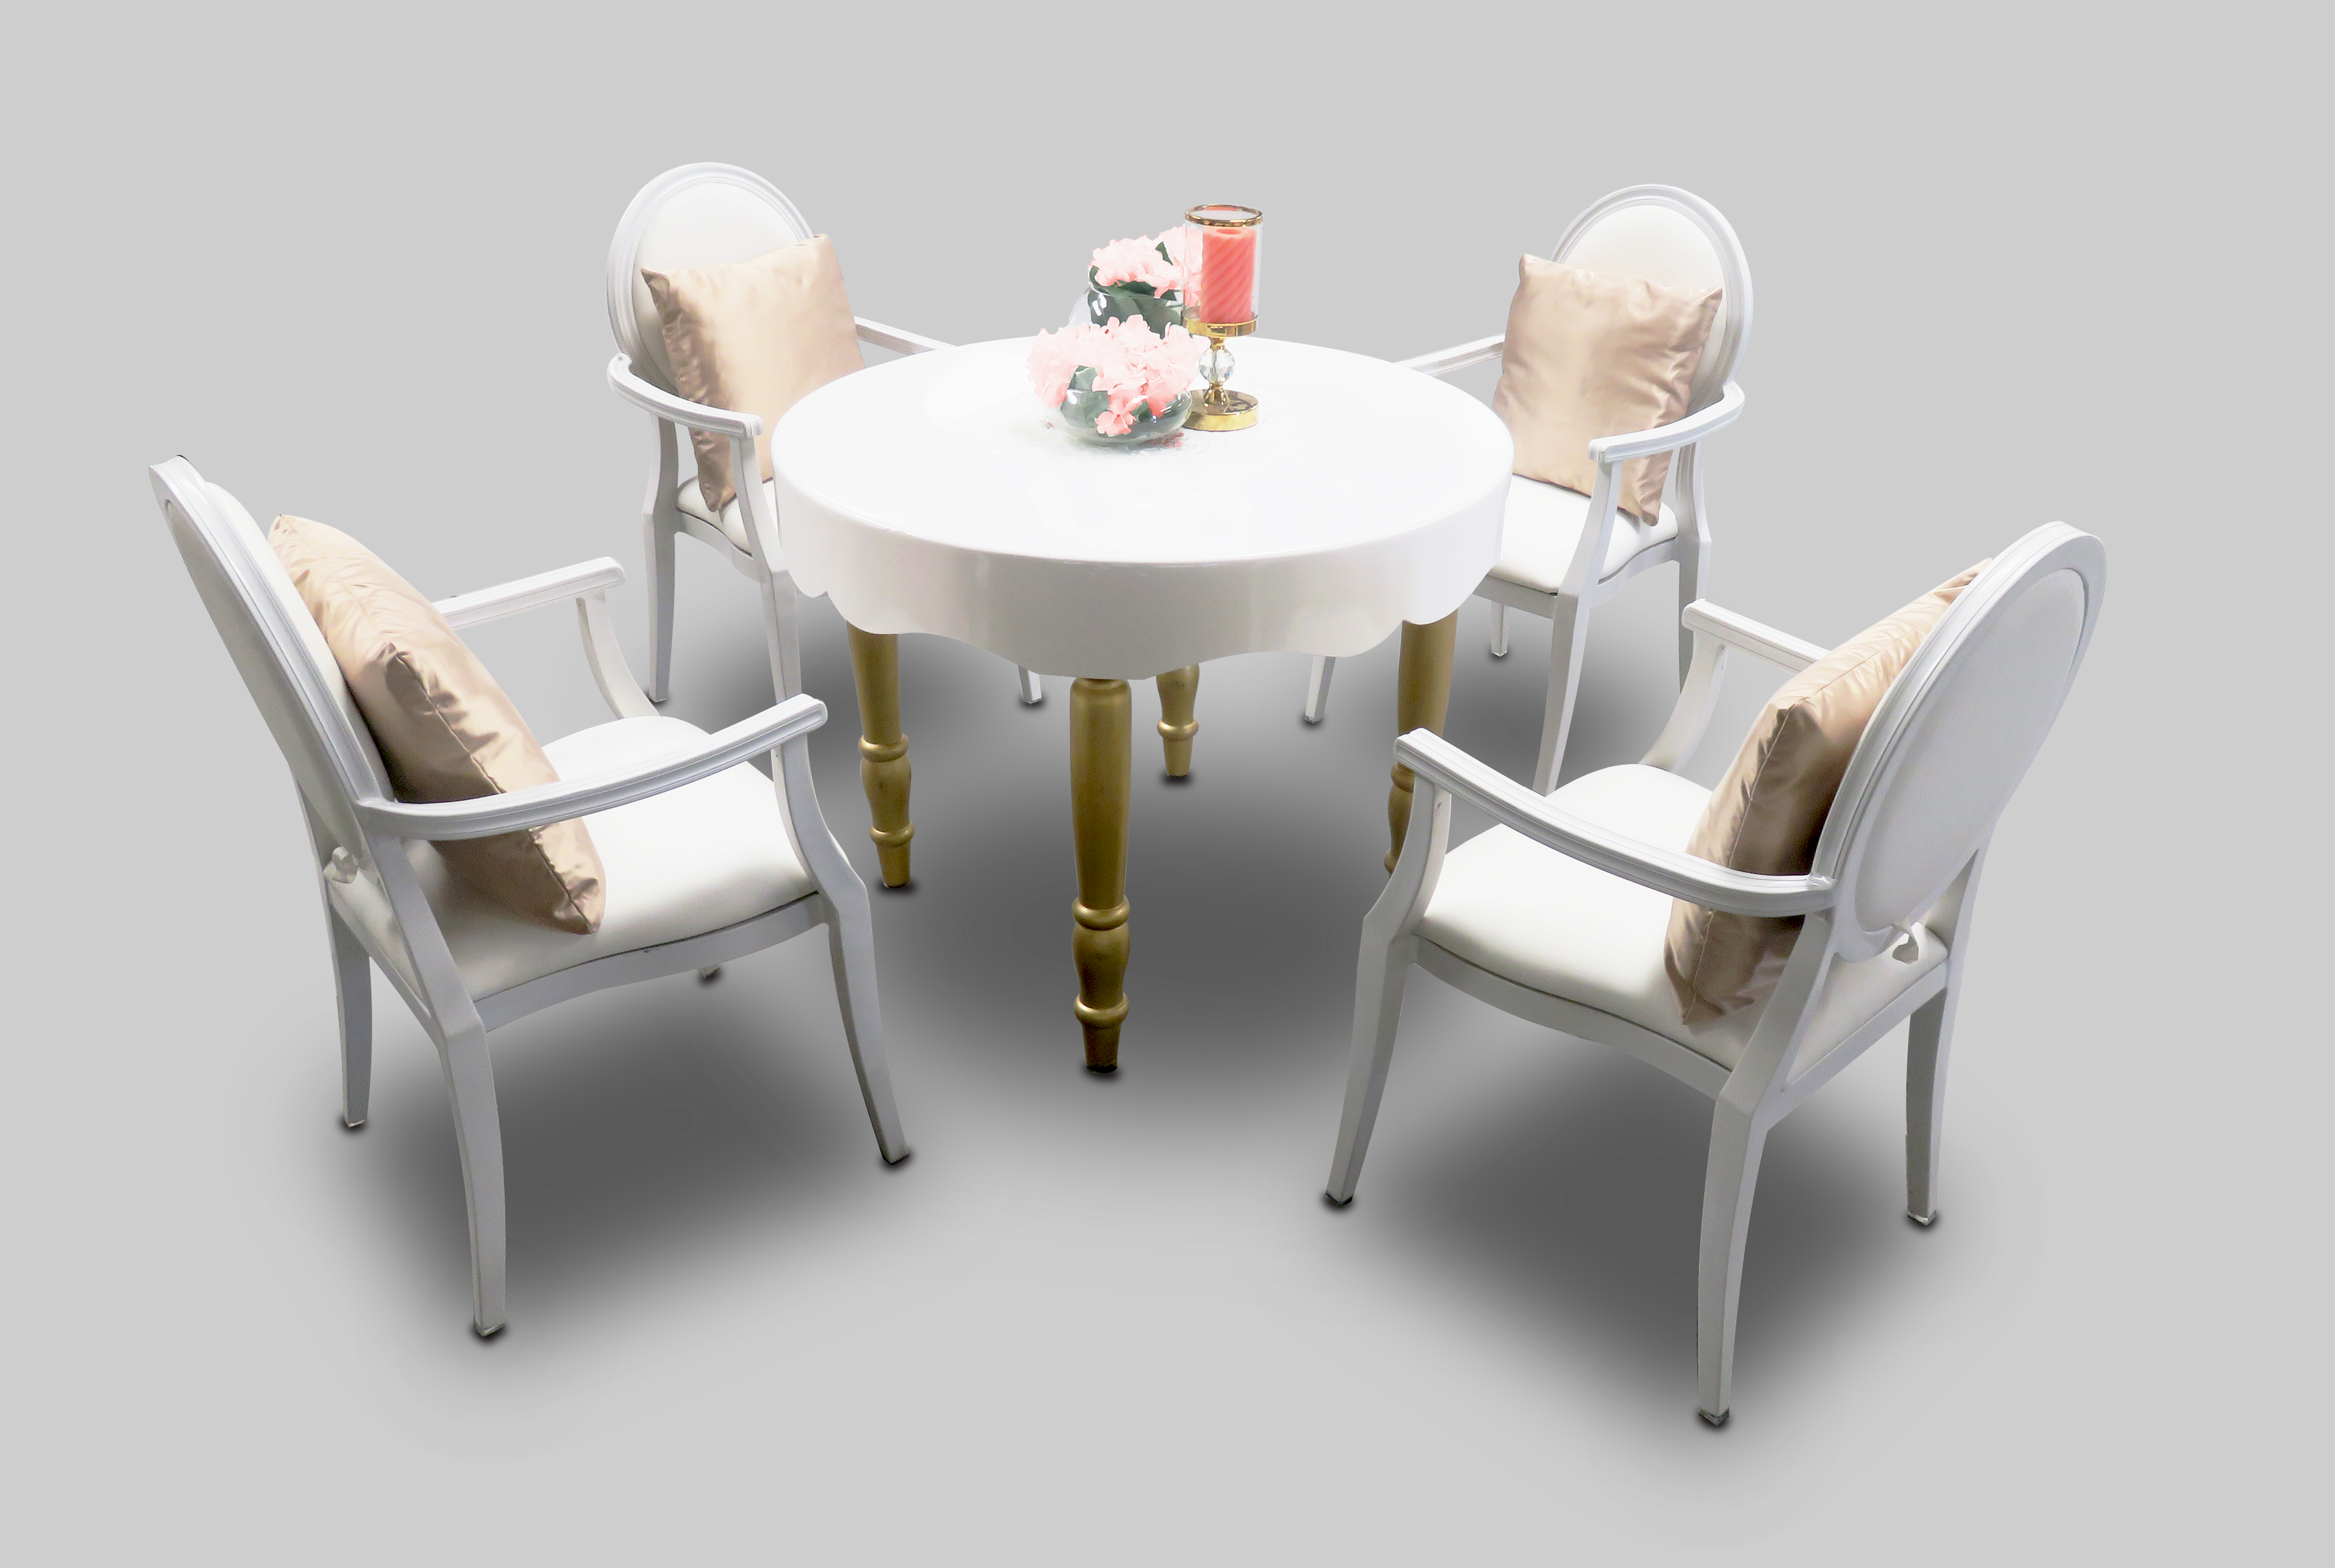 Avalon Chic Round Gold Dining Table Available For Rent Or Sale In Dubai Abu Dhabi And Uae